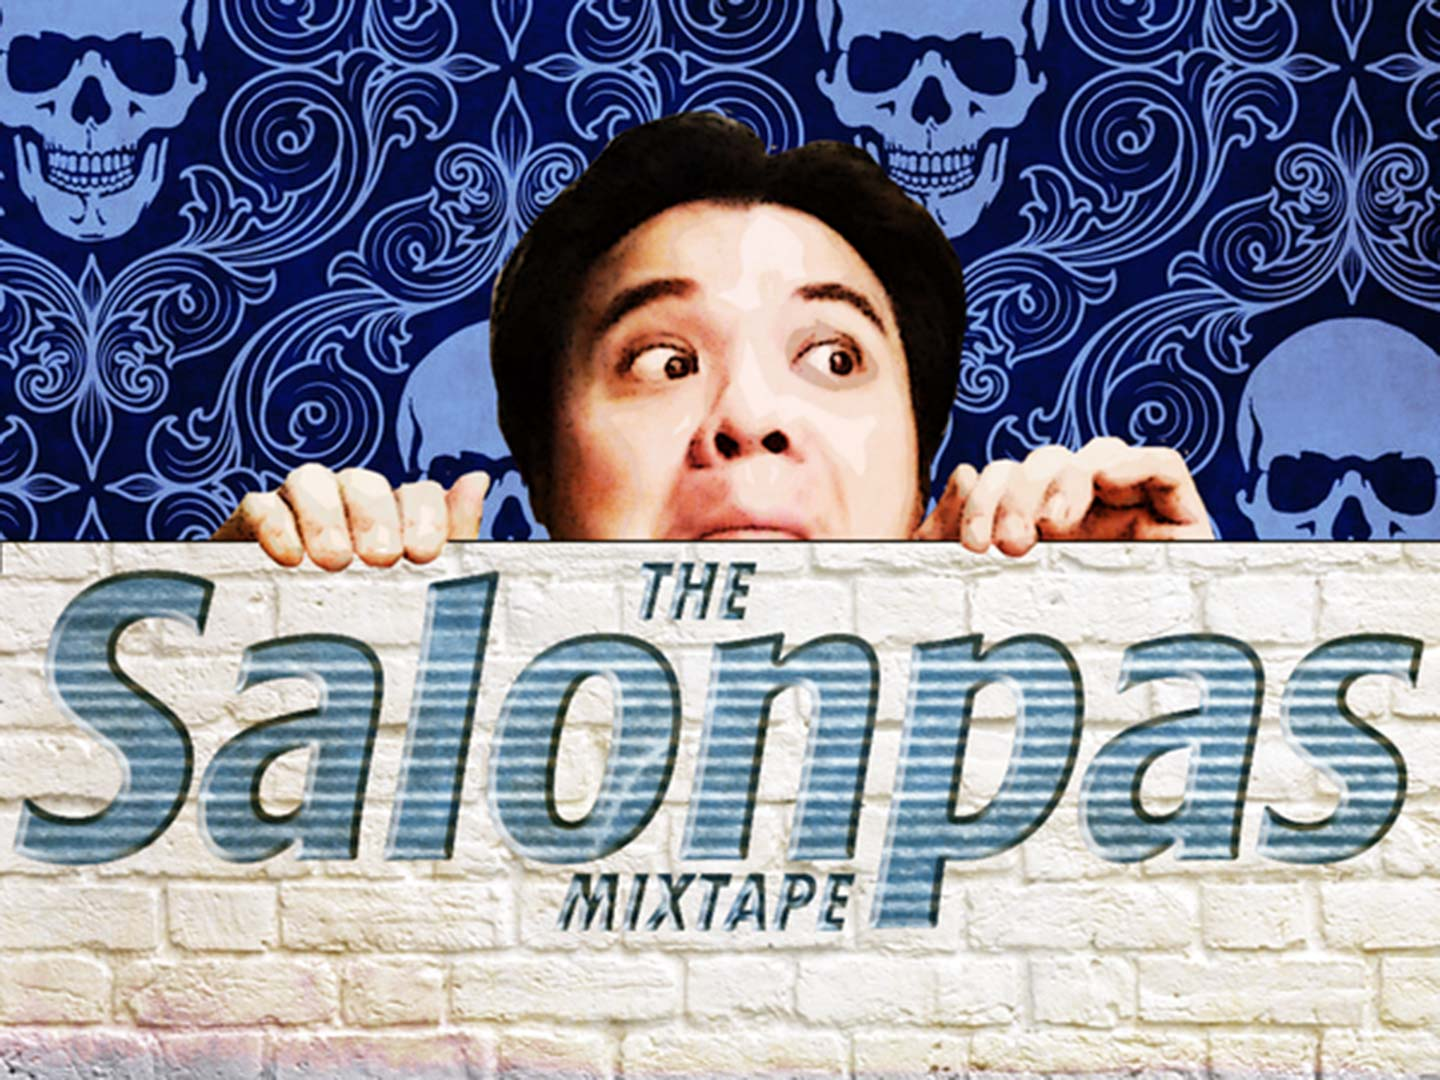 Dimas made the Salonpas Mixtape